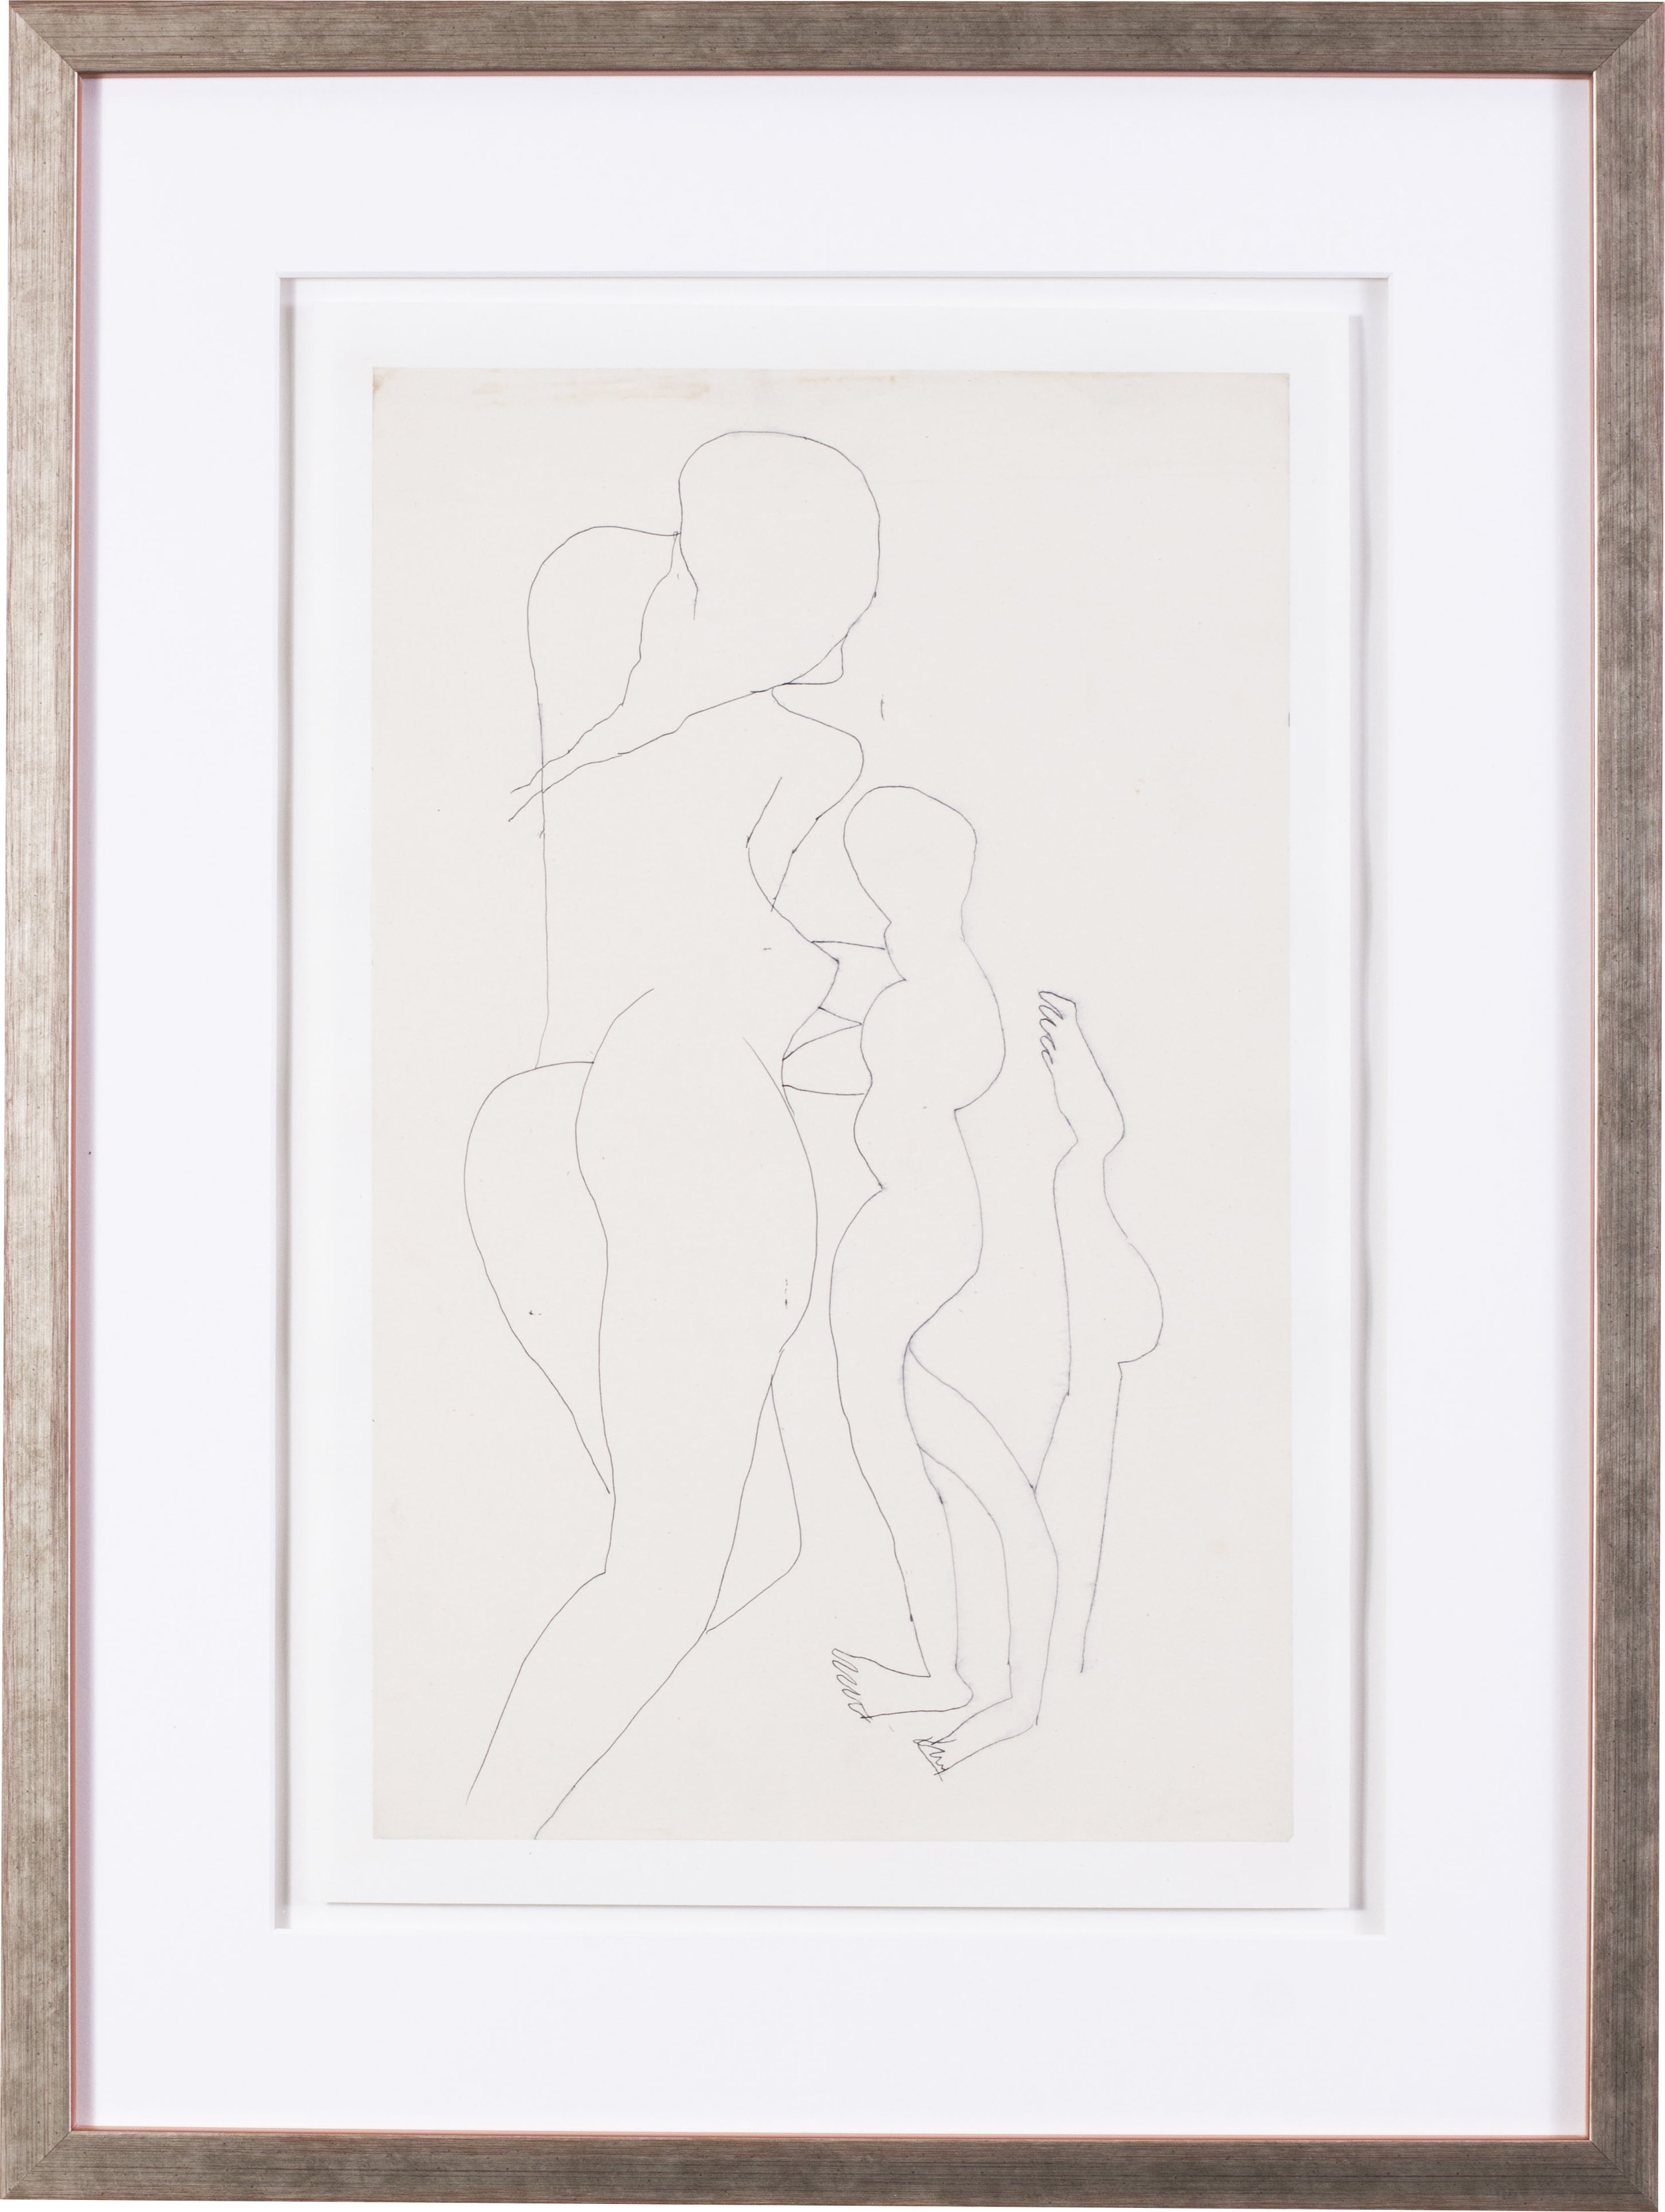 Female nudes   Pen on paper  15.3/4 x 9.7/8 in. (40 x 25 cm.)  Provenance: The artist's wife Maria, Nee Figueiredo, gifted to her nephew   £2,800